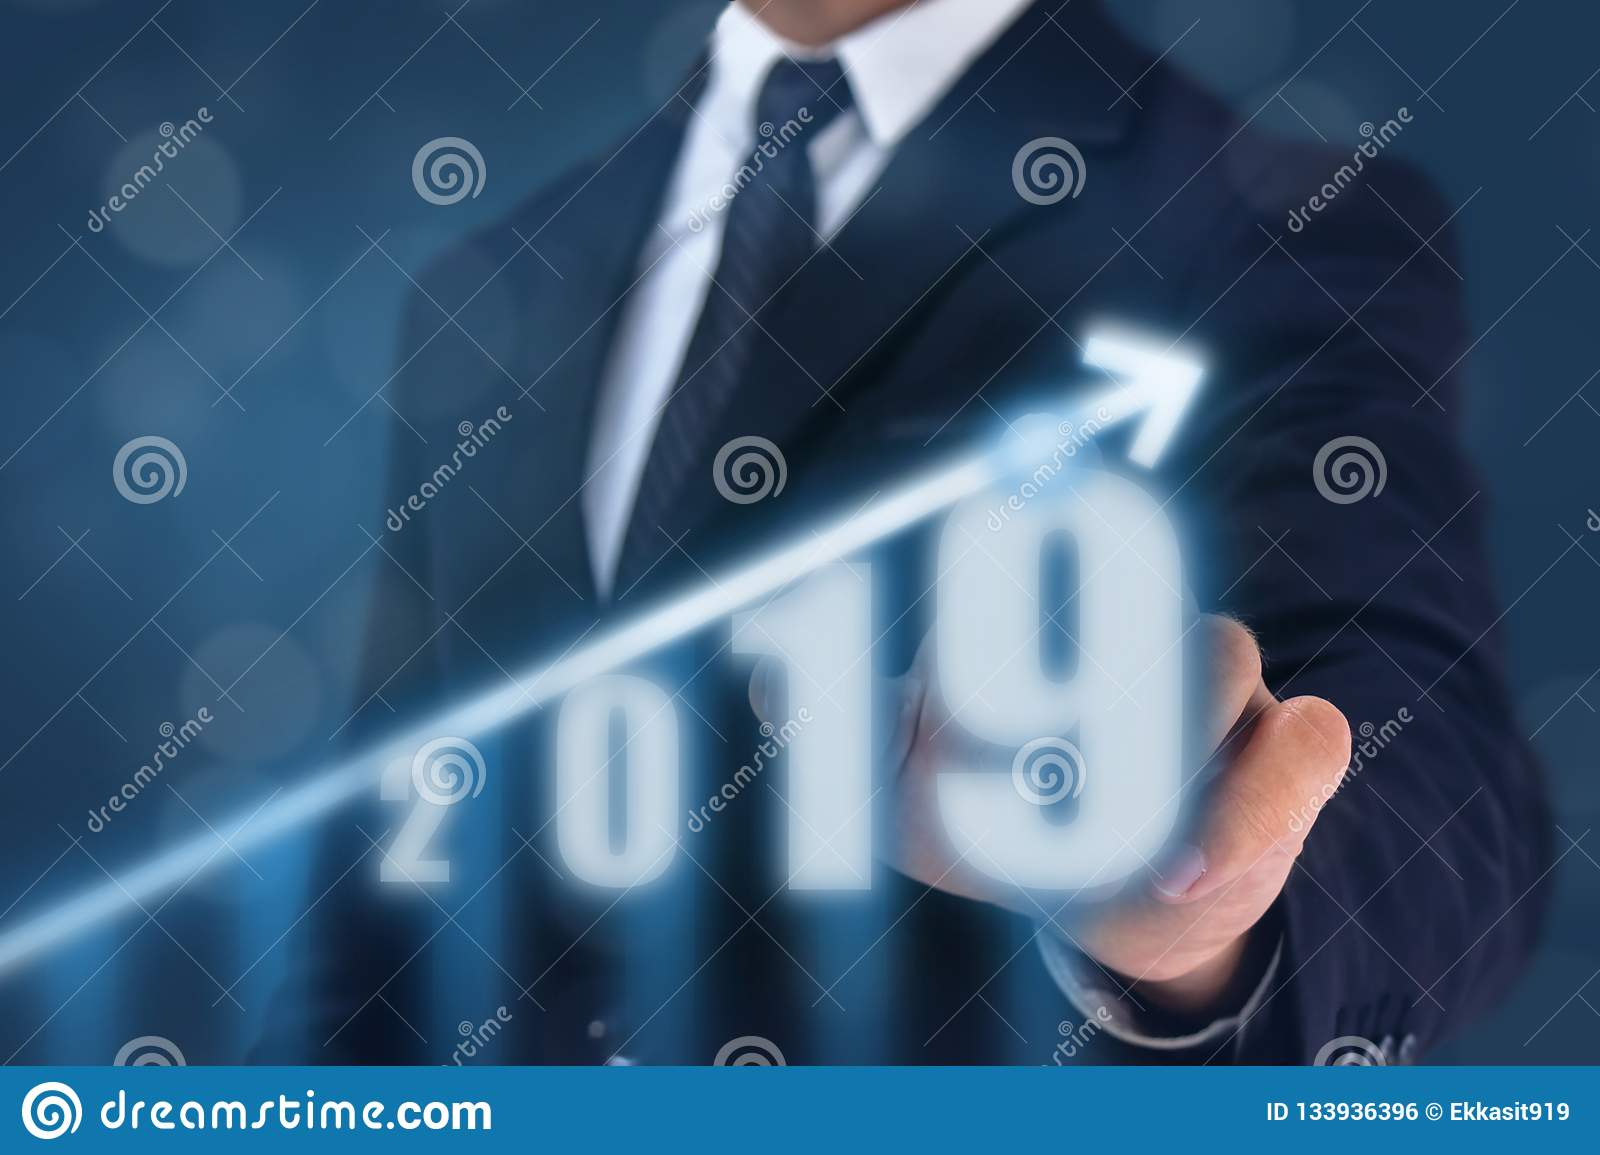 Business man point hand on the top of arrow graph with high rate of growth. The success and growing growth graph in the company or